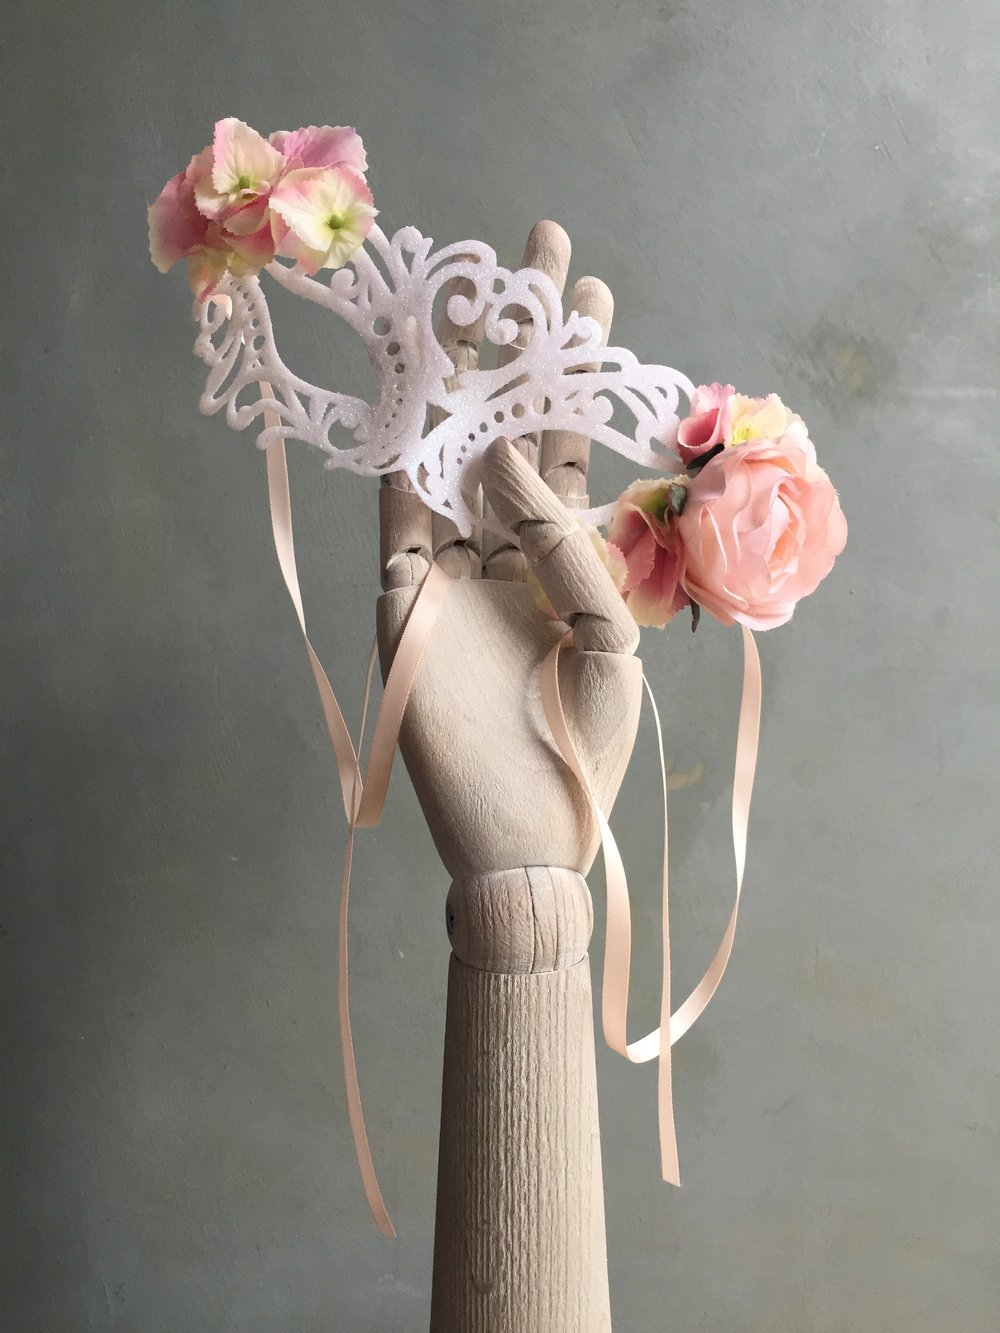 Mask with pink flowers